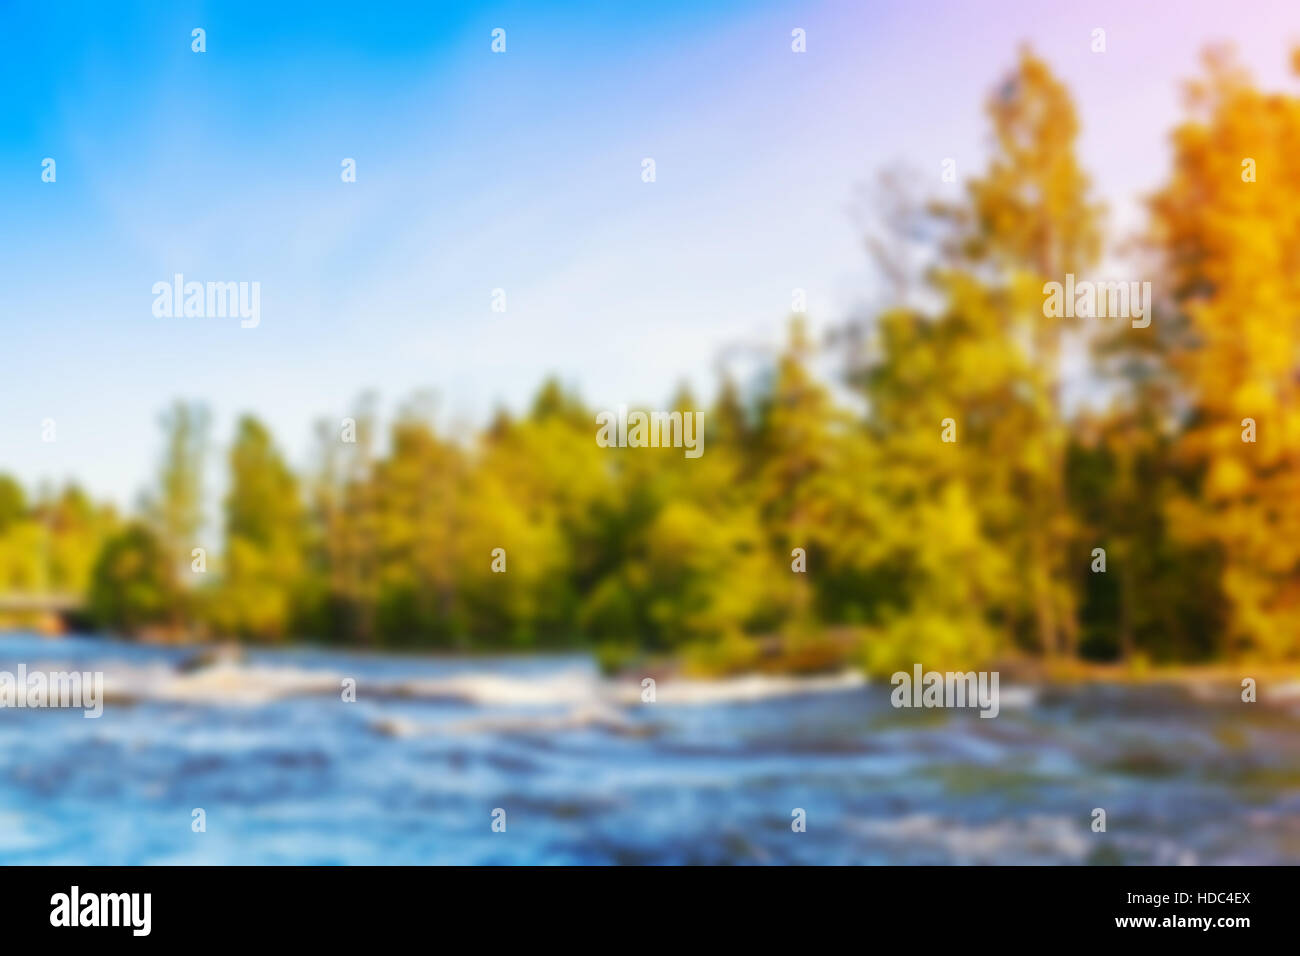 blurred beautiful natural landscape - photo #37